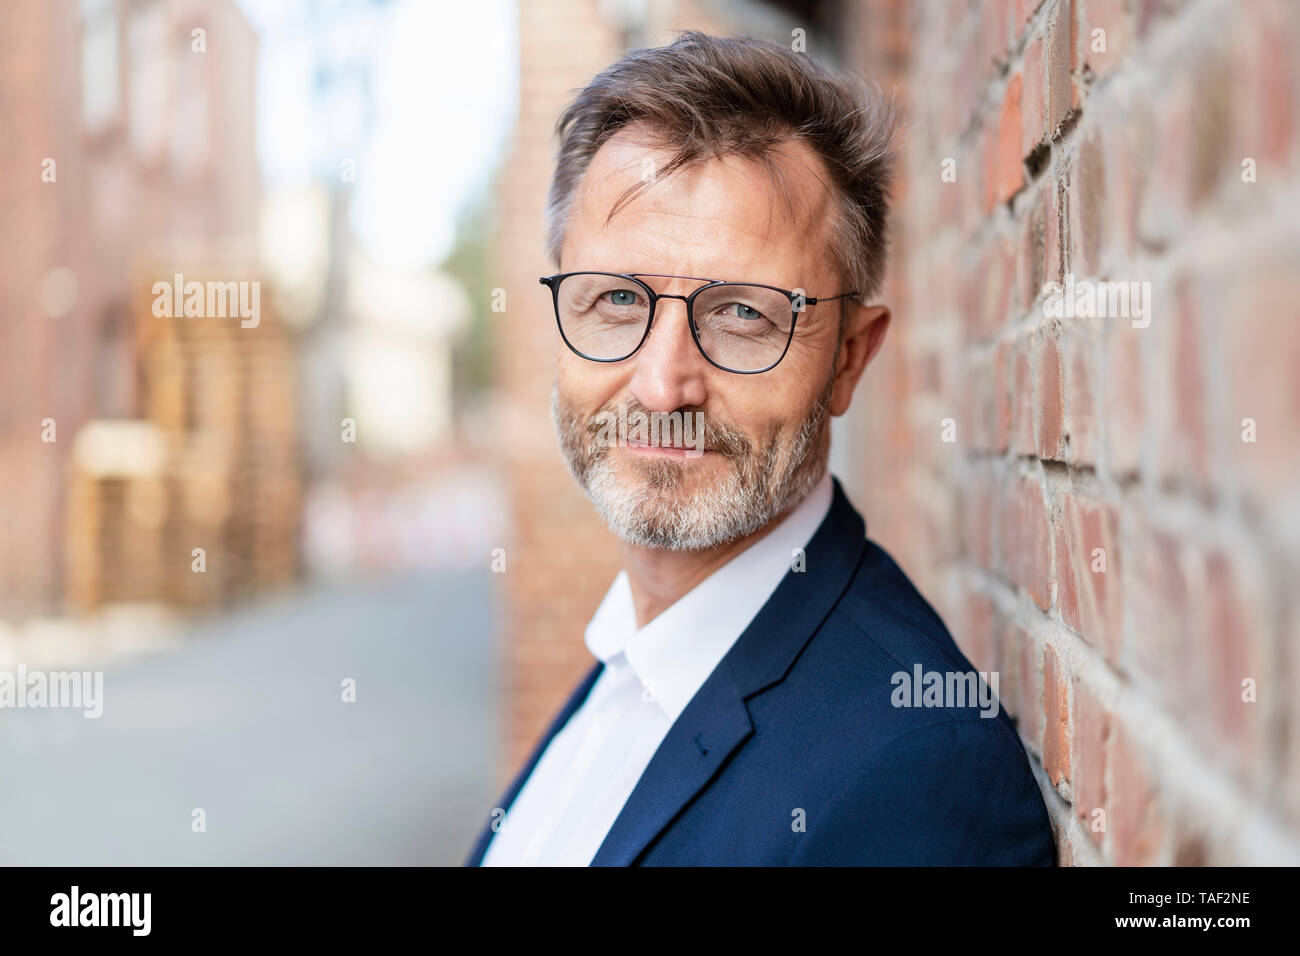 Portrait of confident businessman at brick wall - Stock Image